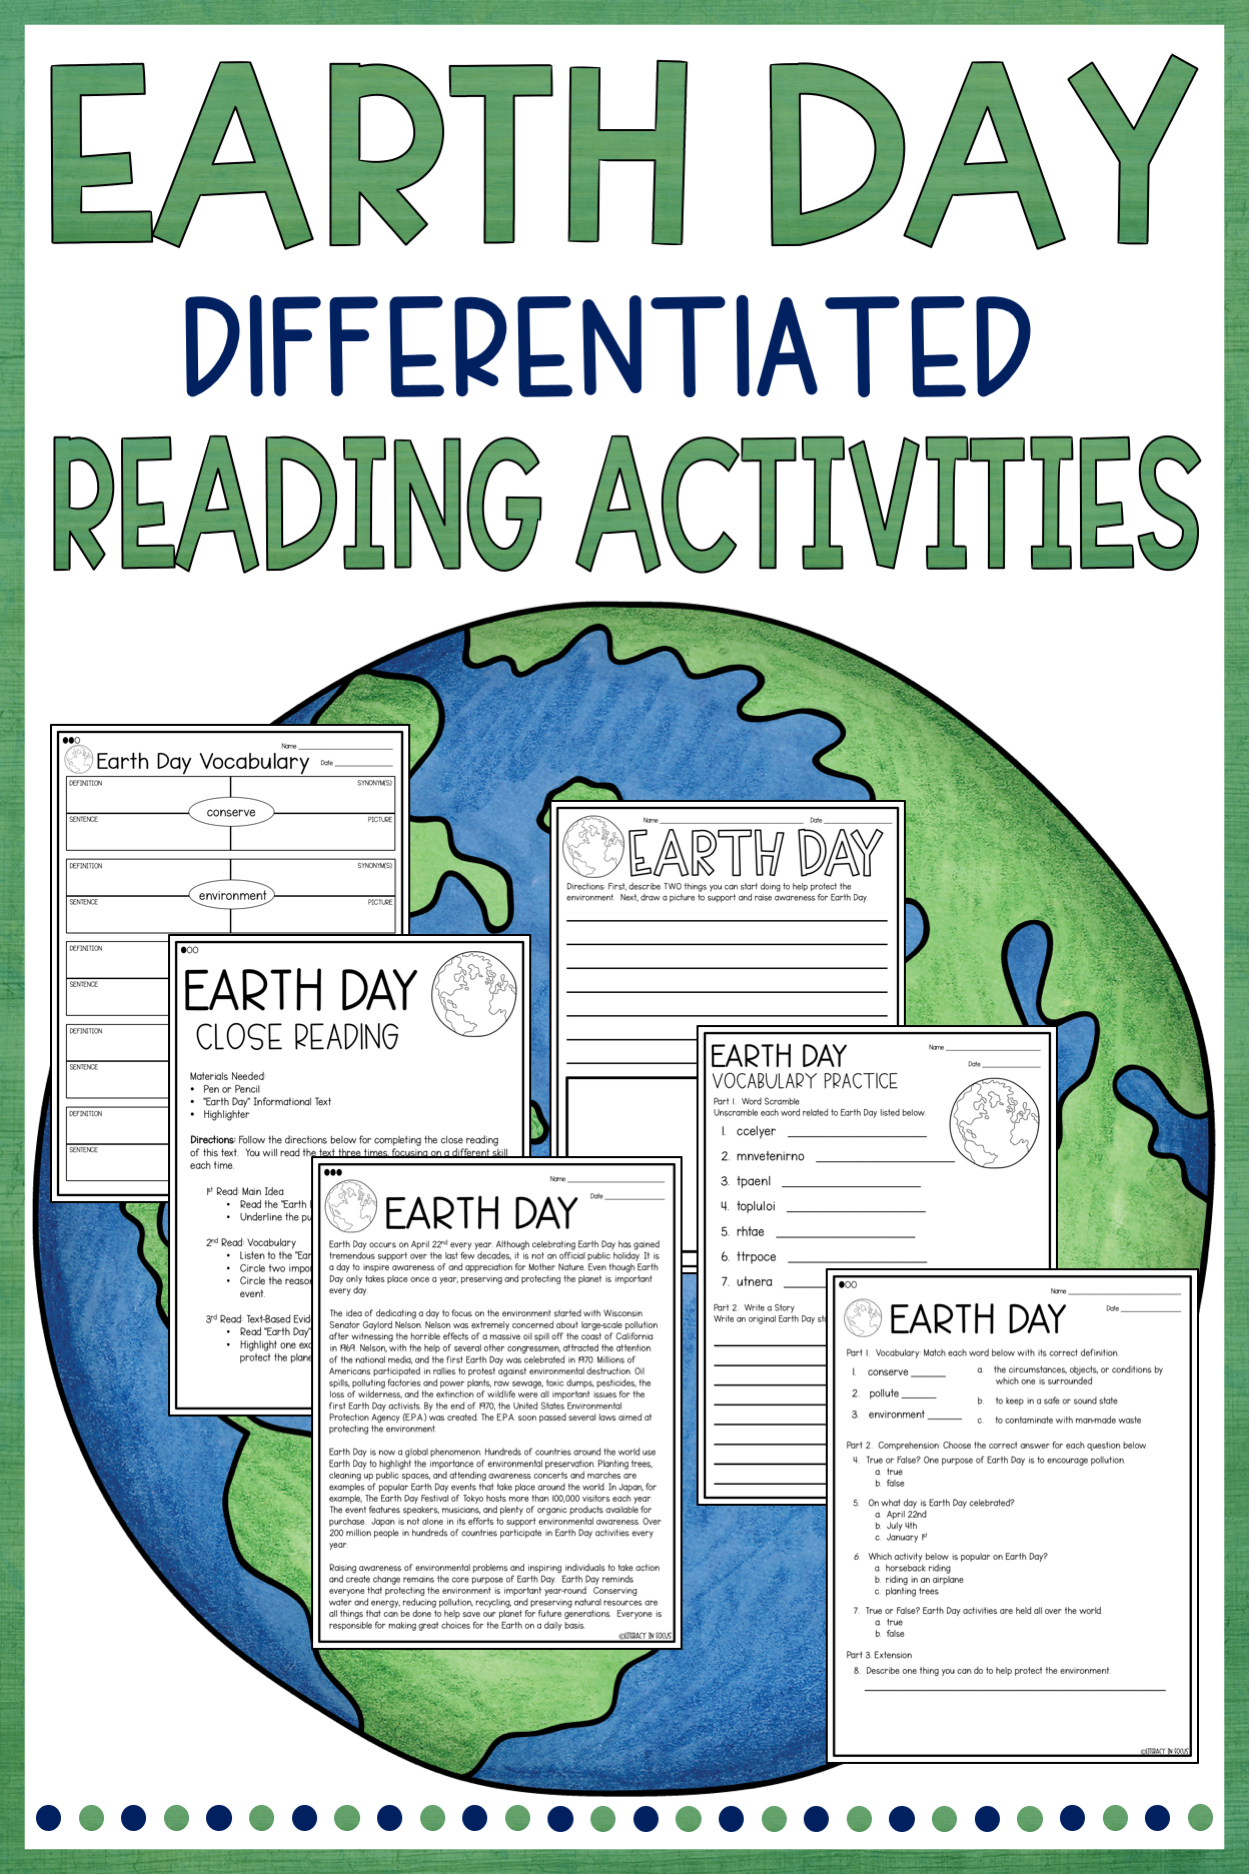 Earth Day Reading Activities